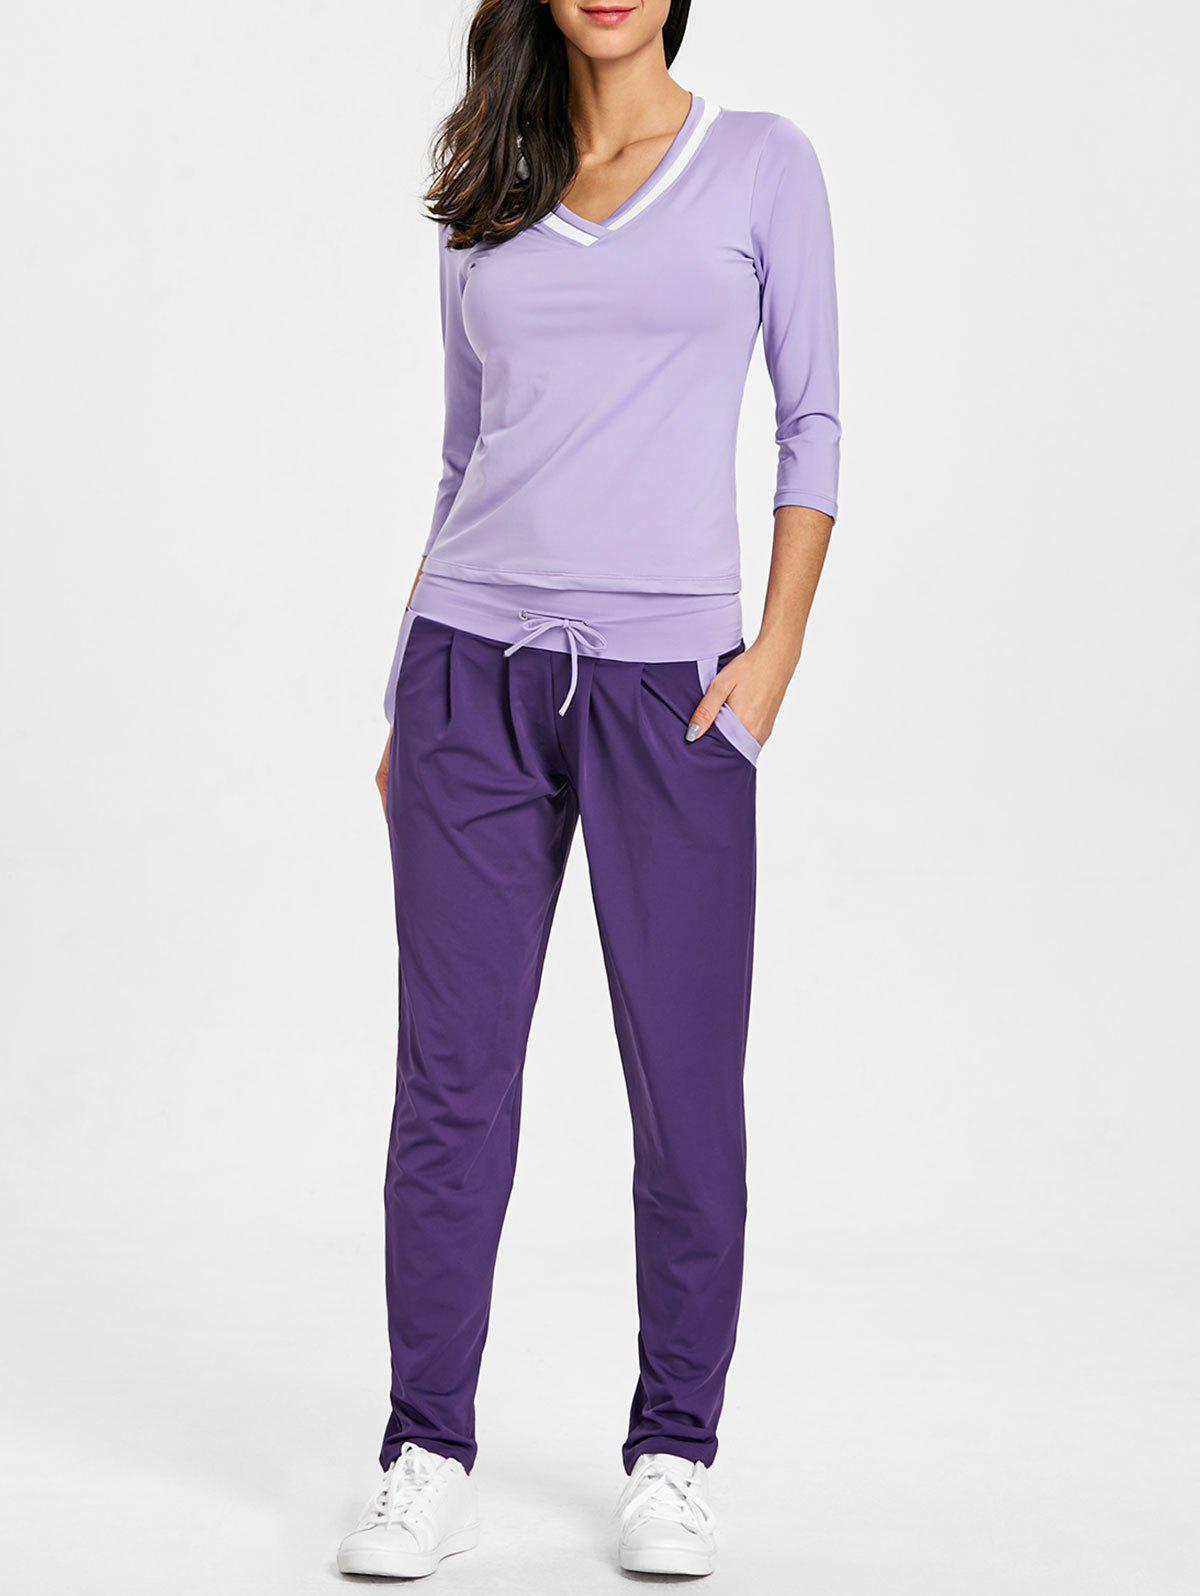 V Neck T-shirt and Drawstring Workout Pants - PURPLE L